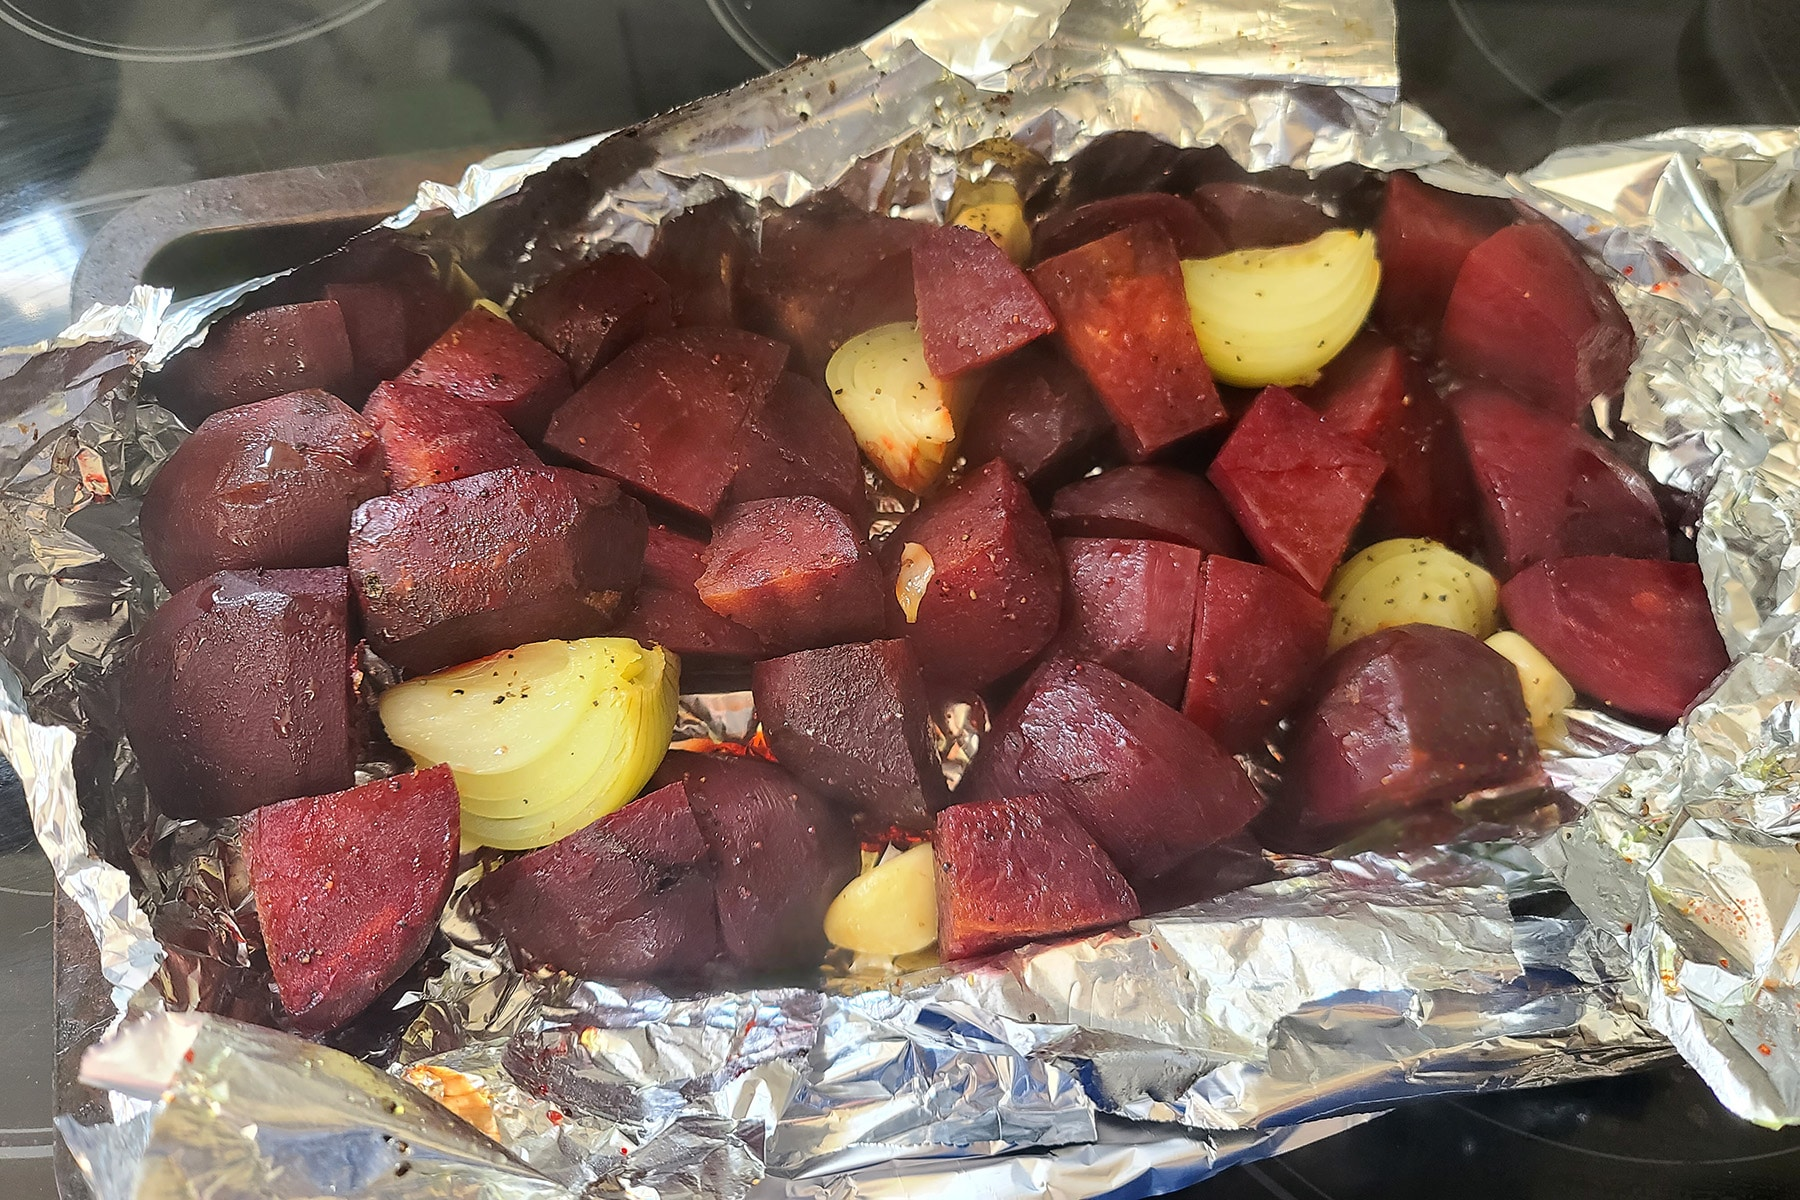 Roasted beets, onions, and garlic, fresh out of the oven.